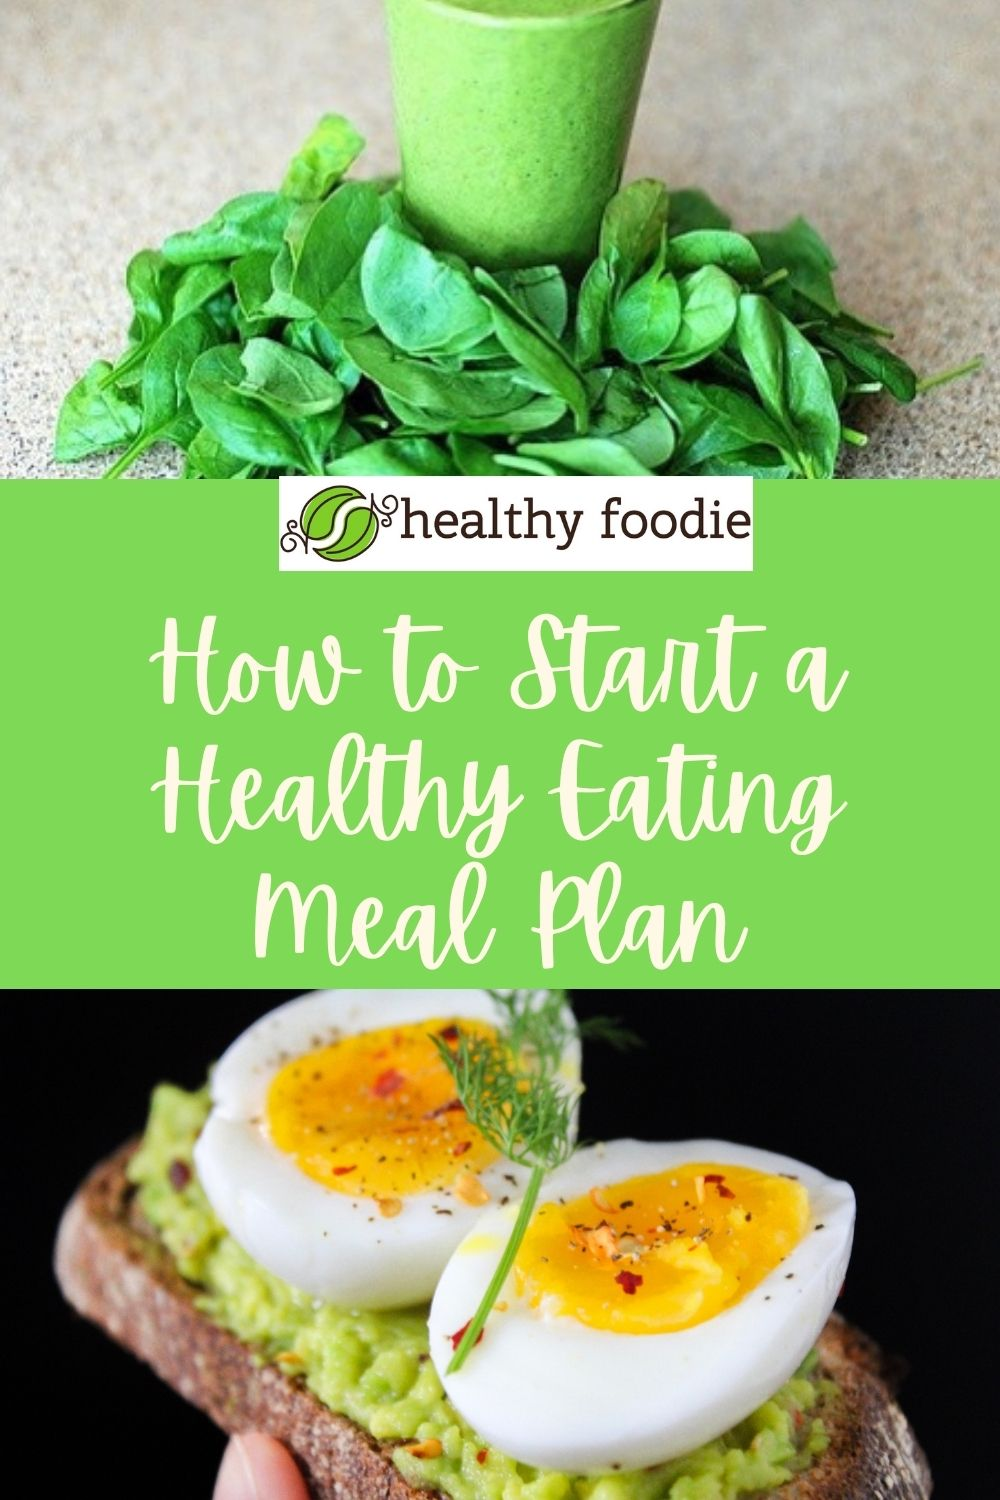 7 day healthy eating meal plan